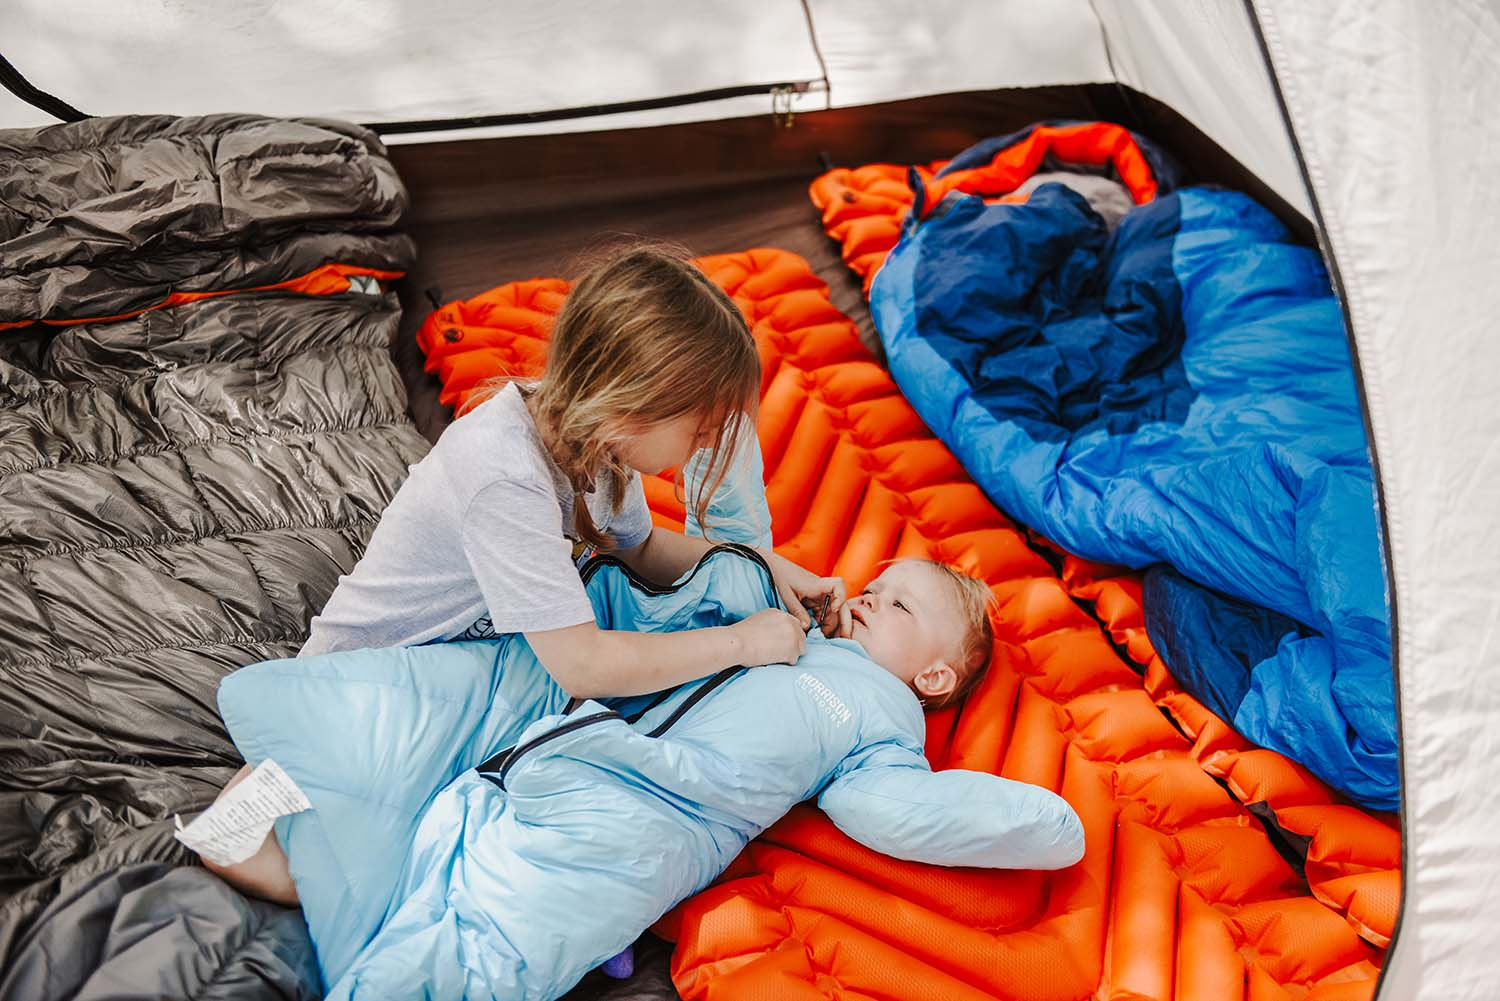 baby and young child in tent wtih sleeping bags